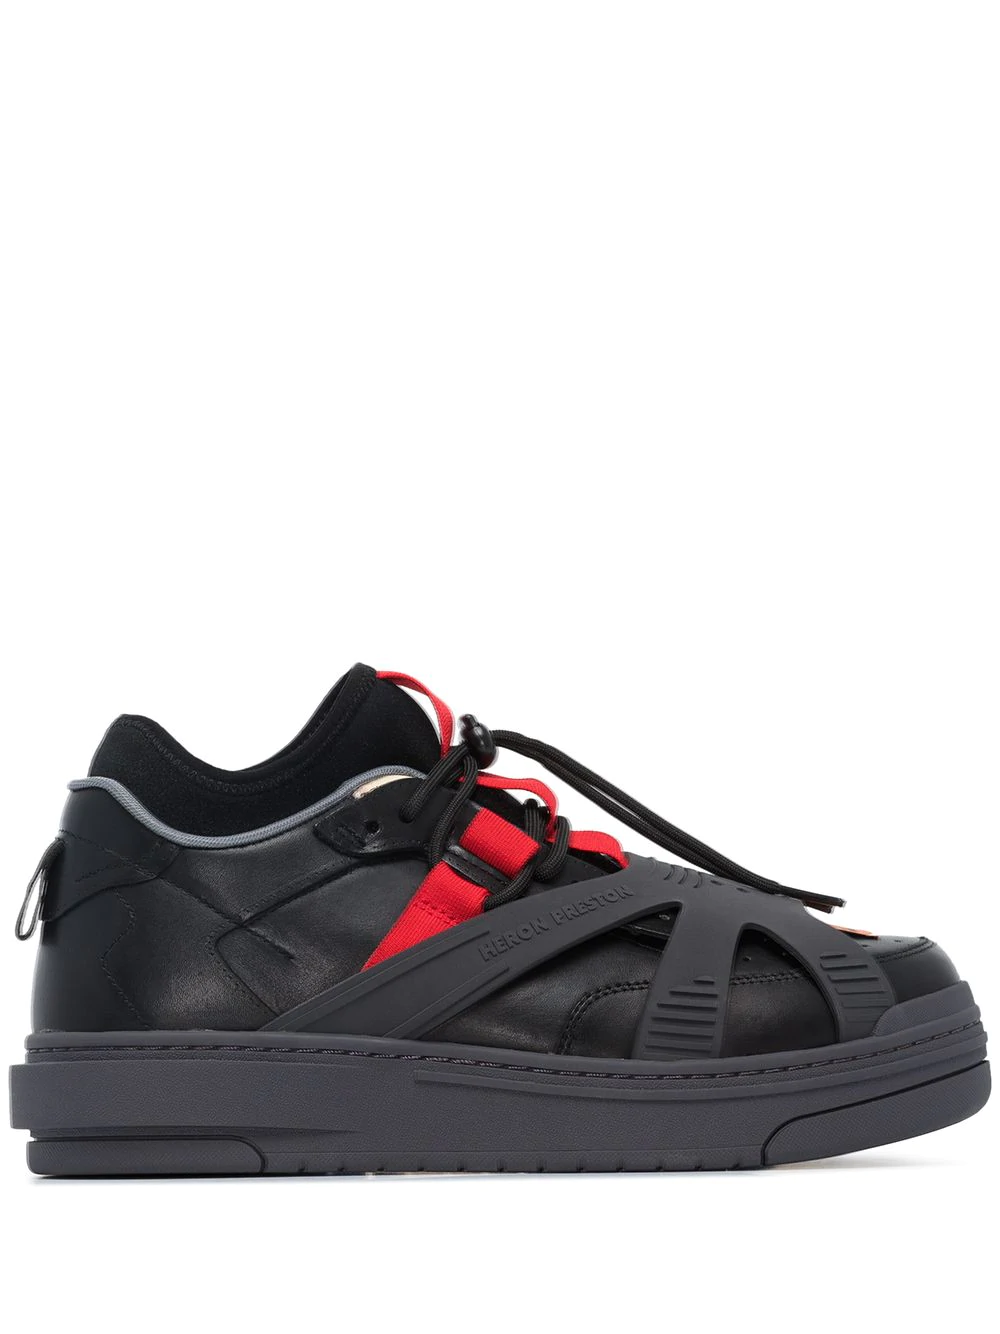 Heron Preston Protection Logo Patch Sneakers